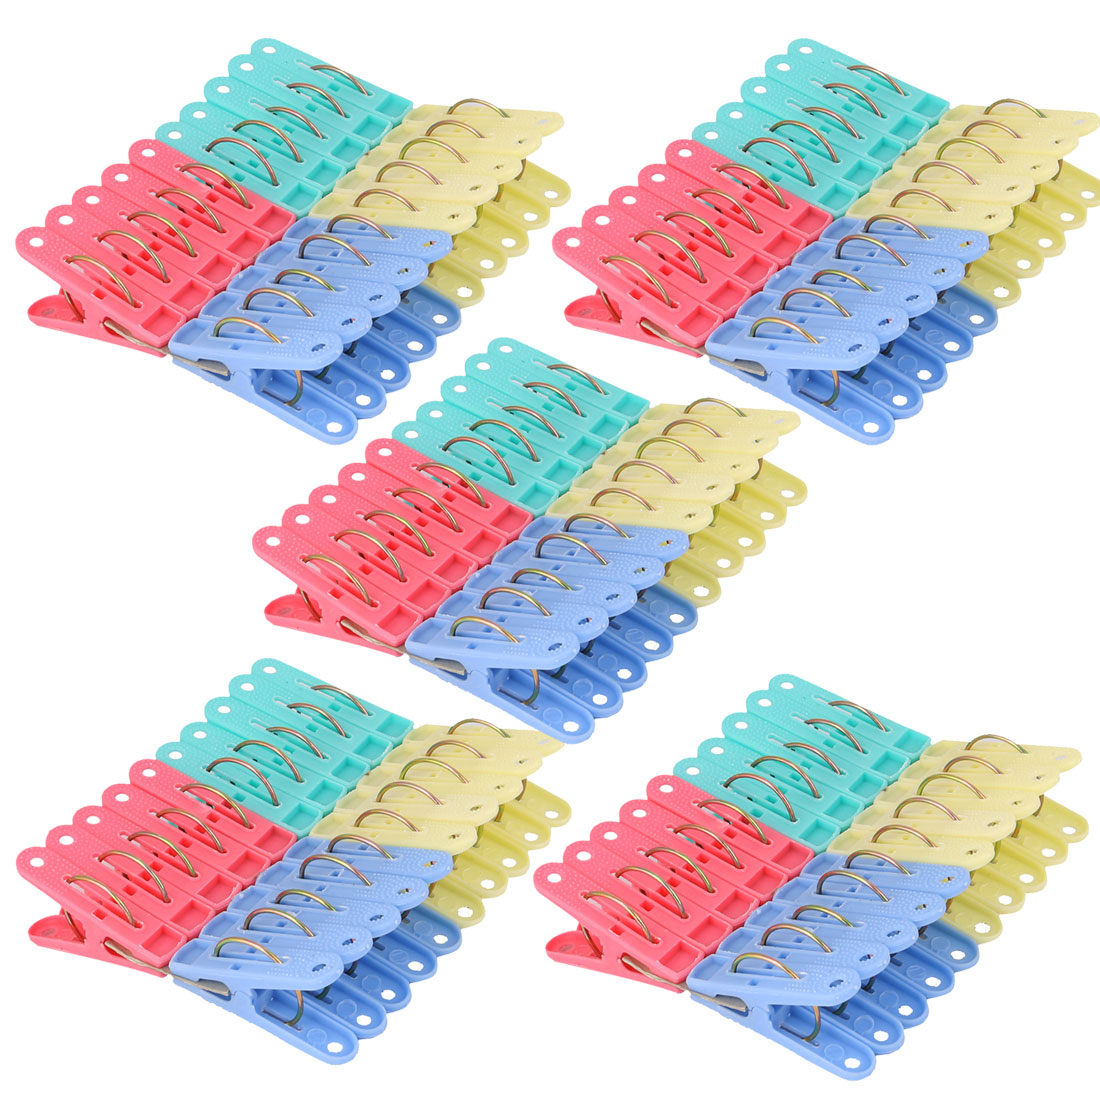 Home Laundry Socks Underwears Clothes Clip Hanging Peg Clothespins 100pcs